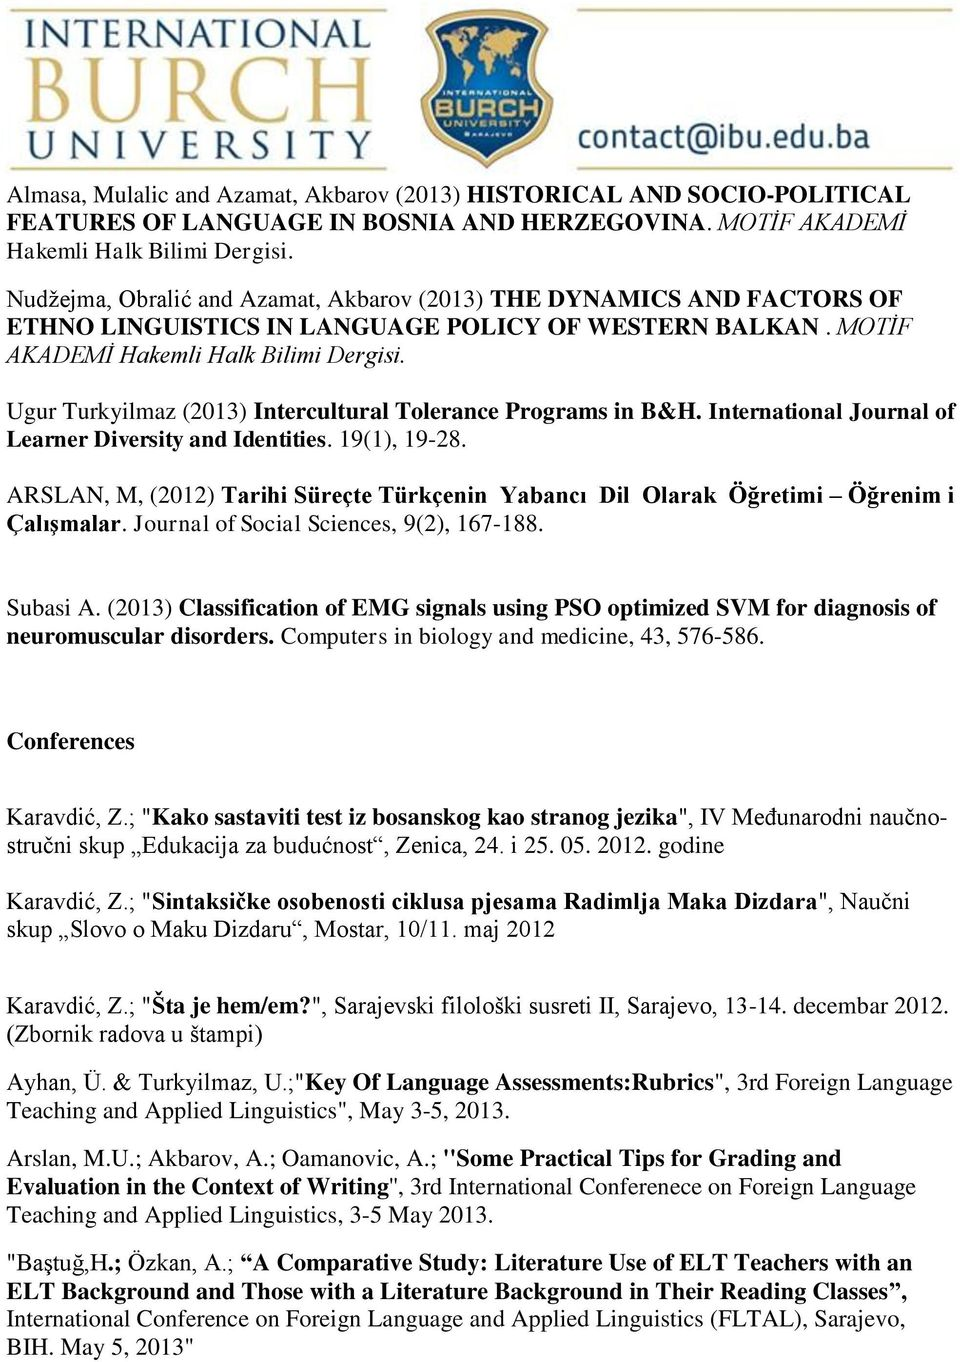 Ugur Turkyilmaz (2013) Intercultural Tolerance Programs in B&H. International Journal of Learner Diversity and Identities. 19(1), 19-28.